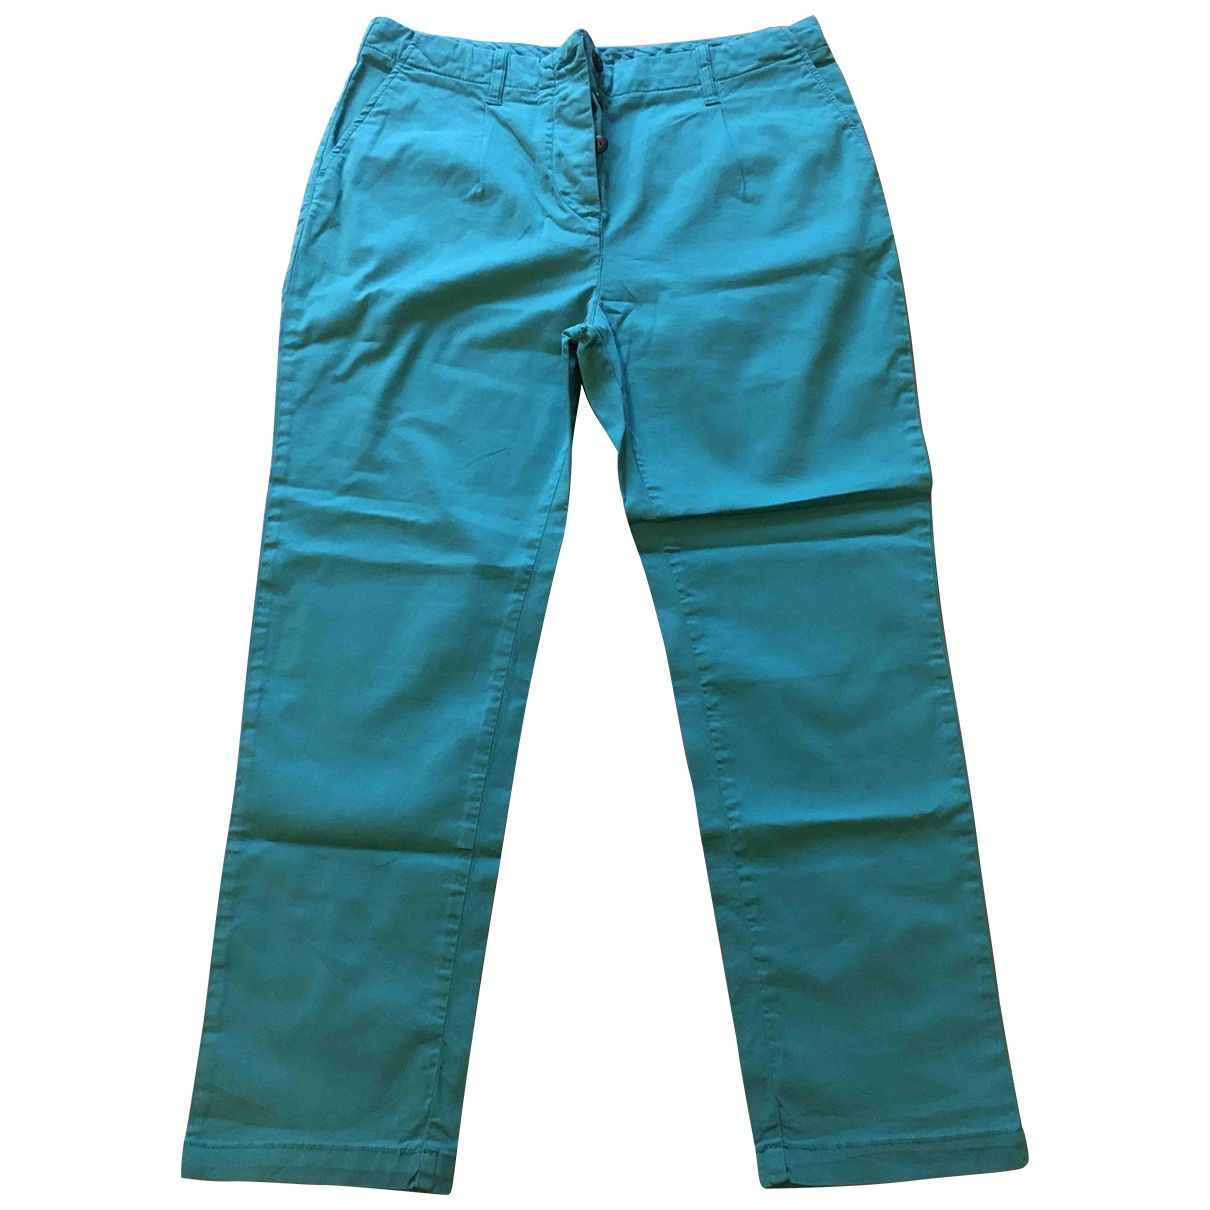 Jucca \N Turquoise Cotton Trousers for Women 40 IT